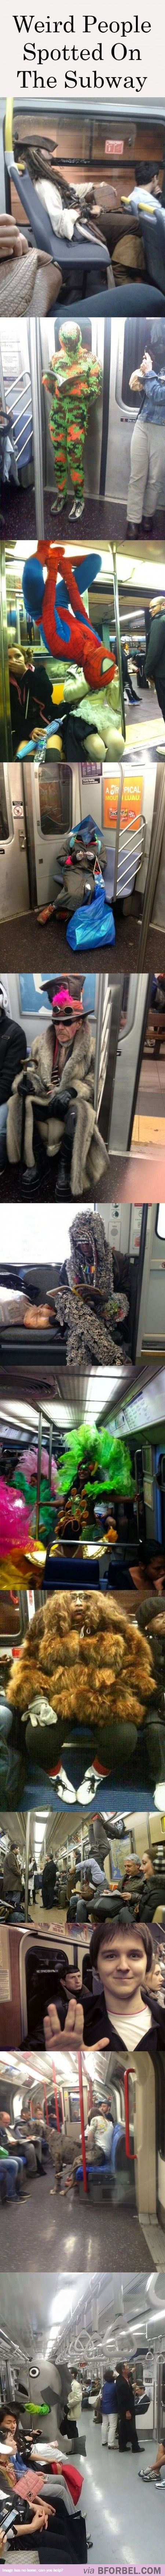 12 Weird Characters Spotted On The Subway…